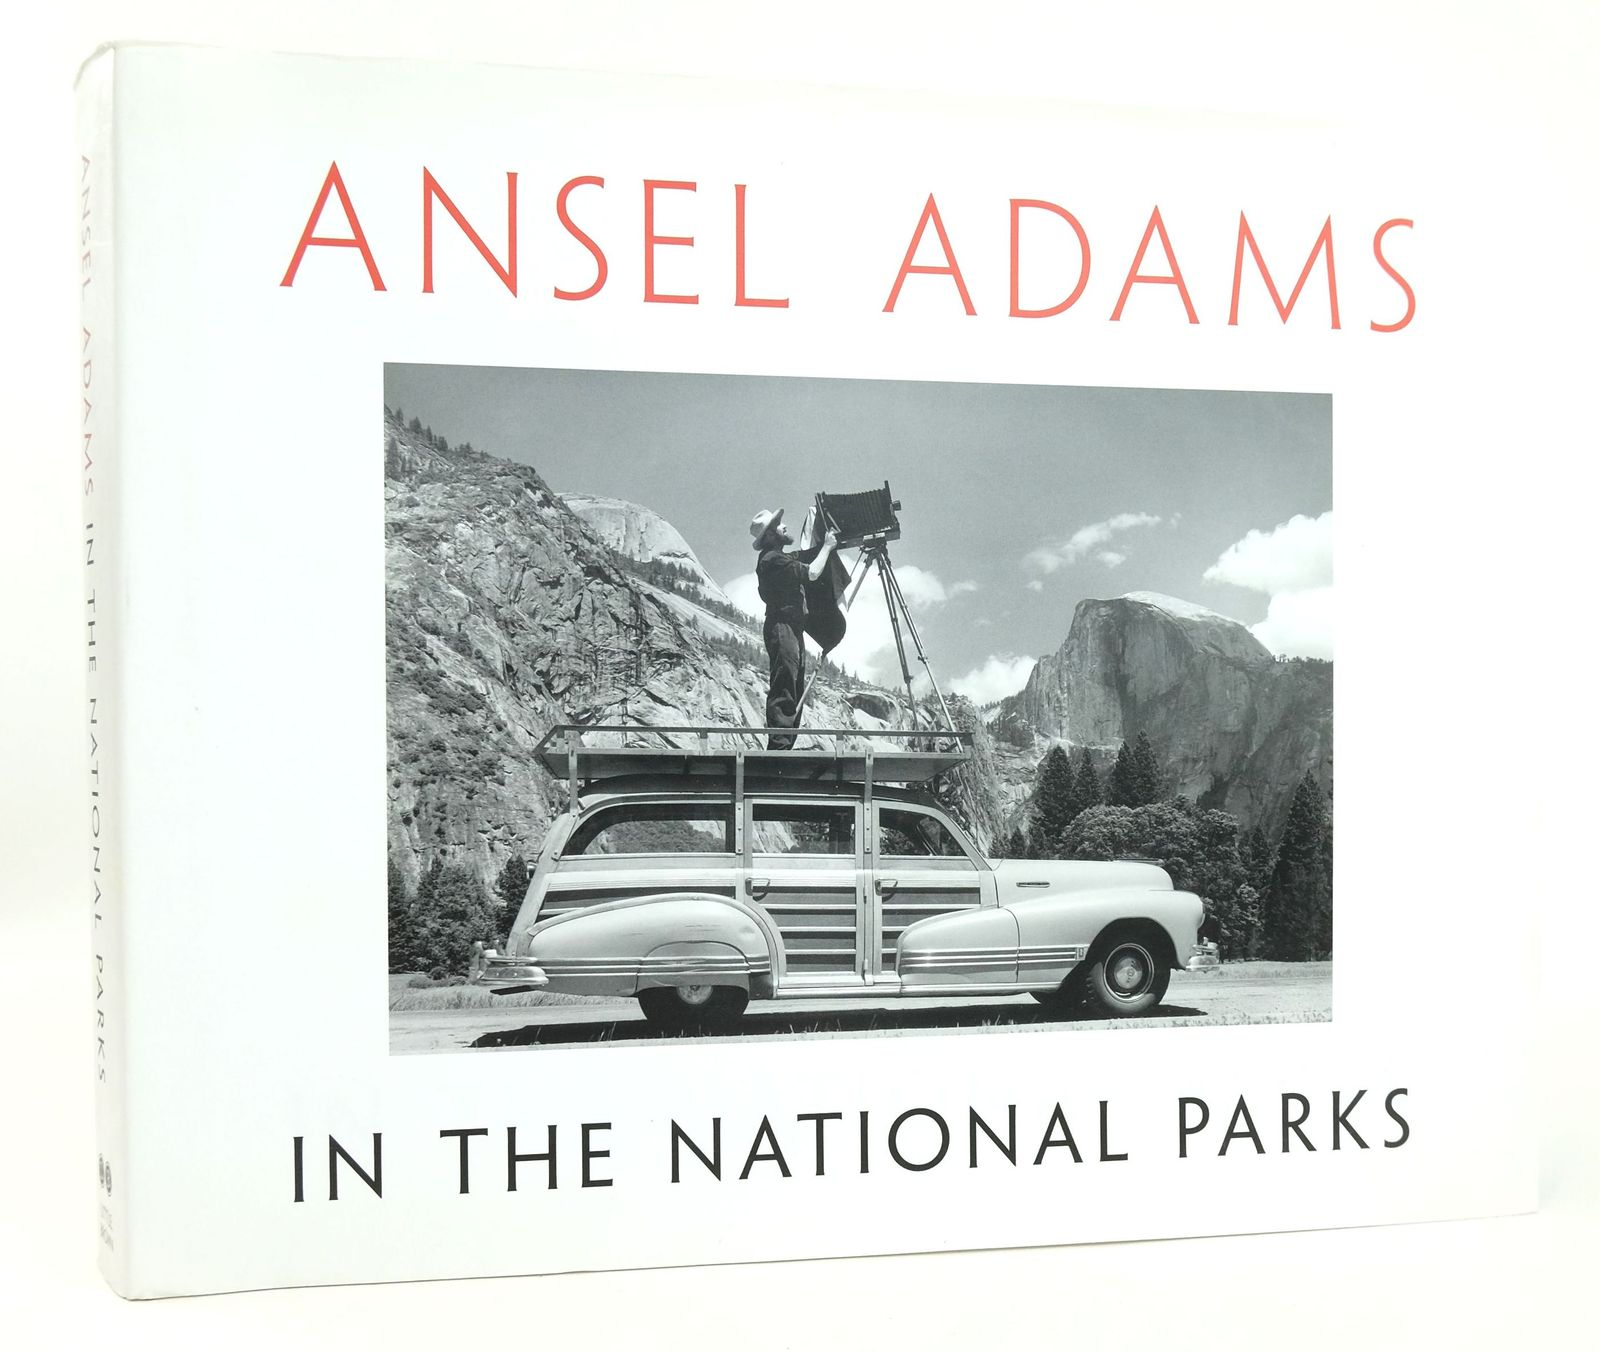 Photo of ANSEL ADAMS IN THE NATIONAL PARKS: PHOTOGRAPHS FROM AMERICA'S WILD PLACES written by Stillman, Andrea G. illustrated by Adams, Ansel published by Little, Brown and Company (STOCK CODE: 1819043)  for sale by Stella & Rose's Books